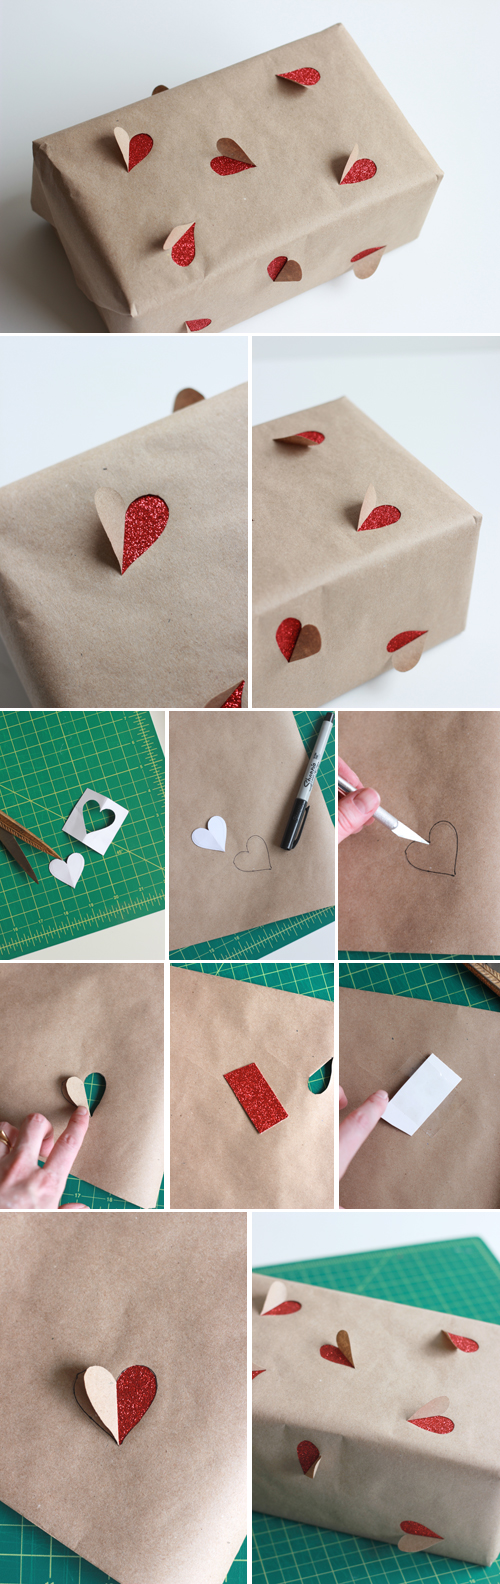 Simple Valentine's Day gift wrapping ideas